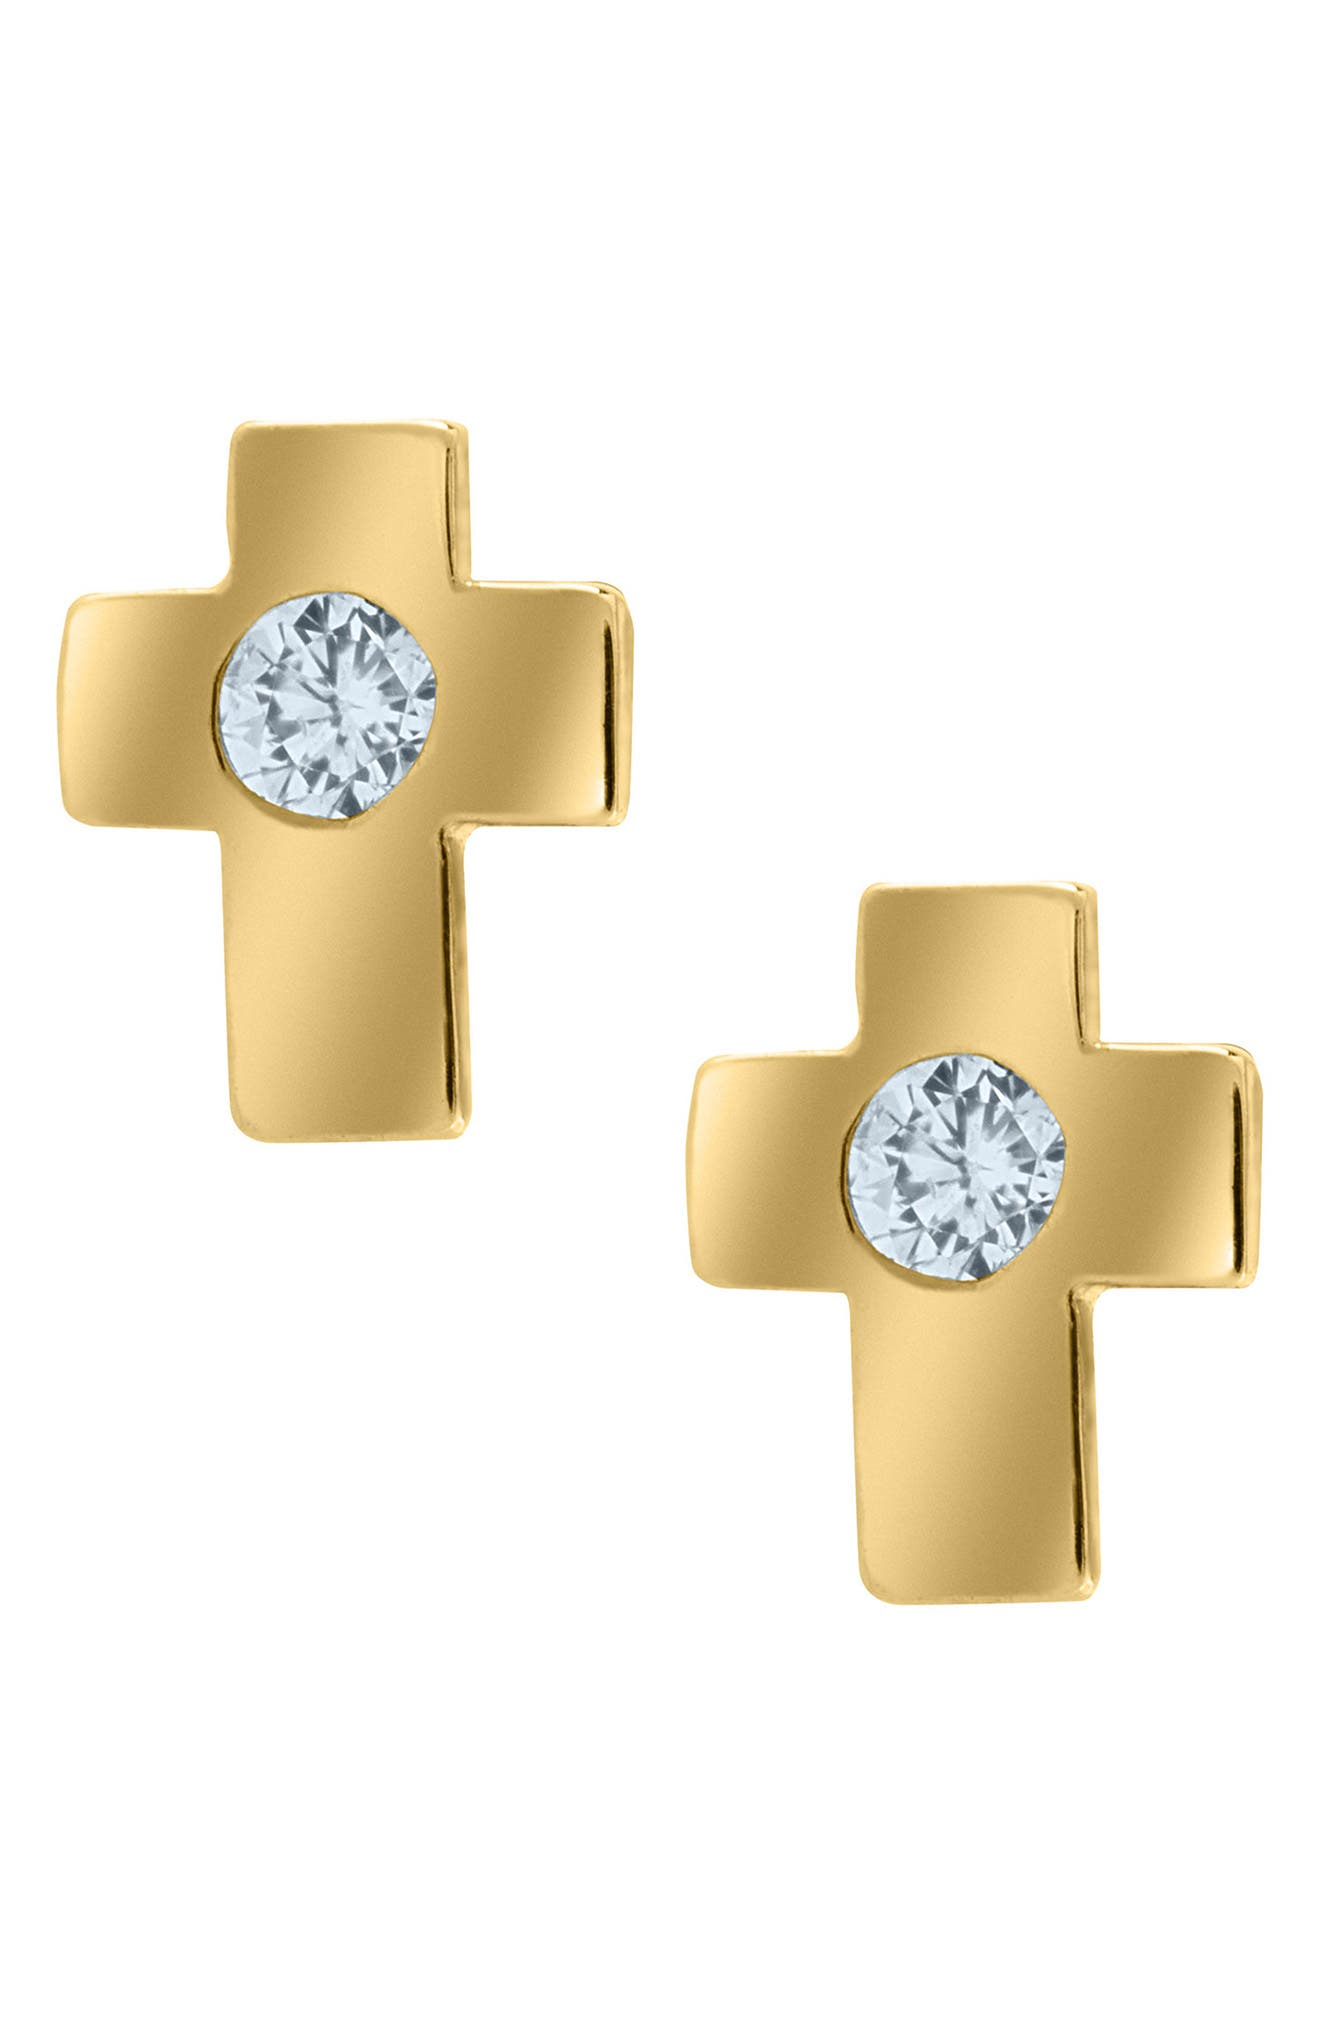 14k Gold & Cubic Zirconia Cross Earrings,                         Main,                         color, GOLD